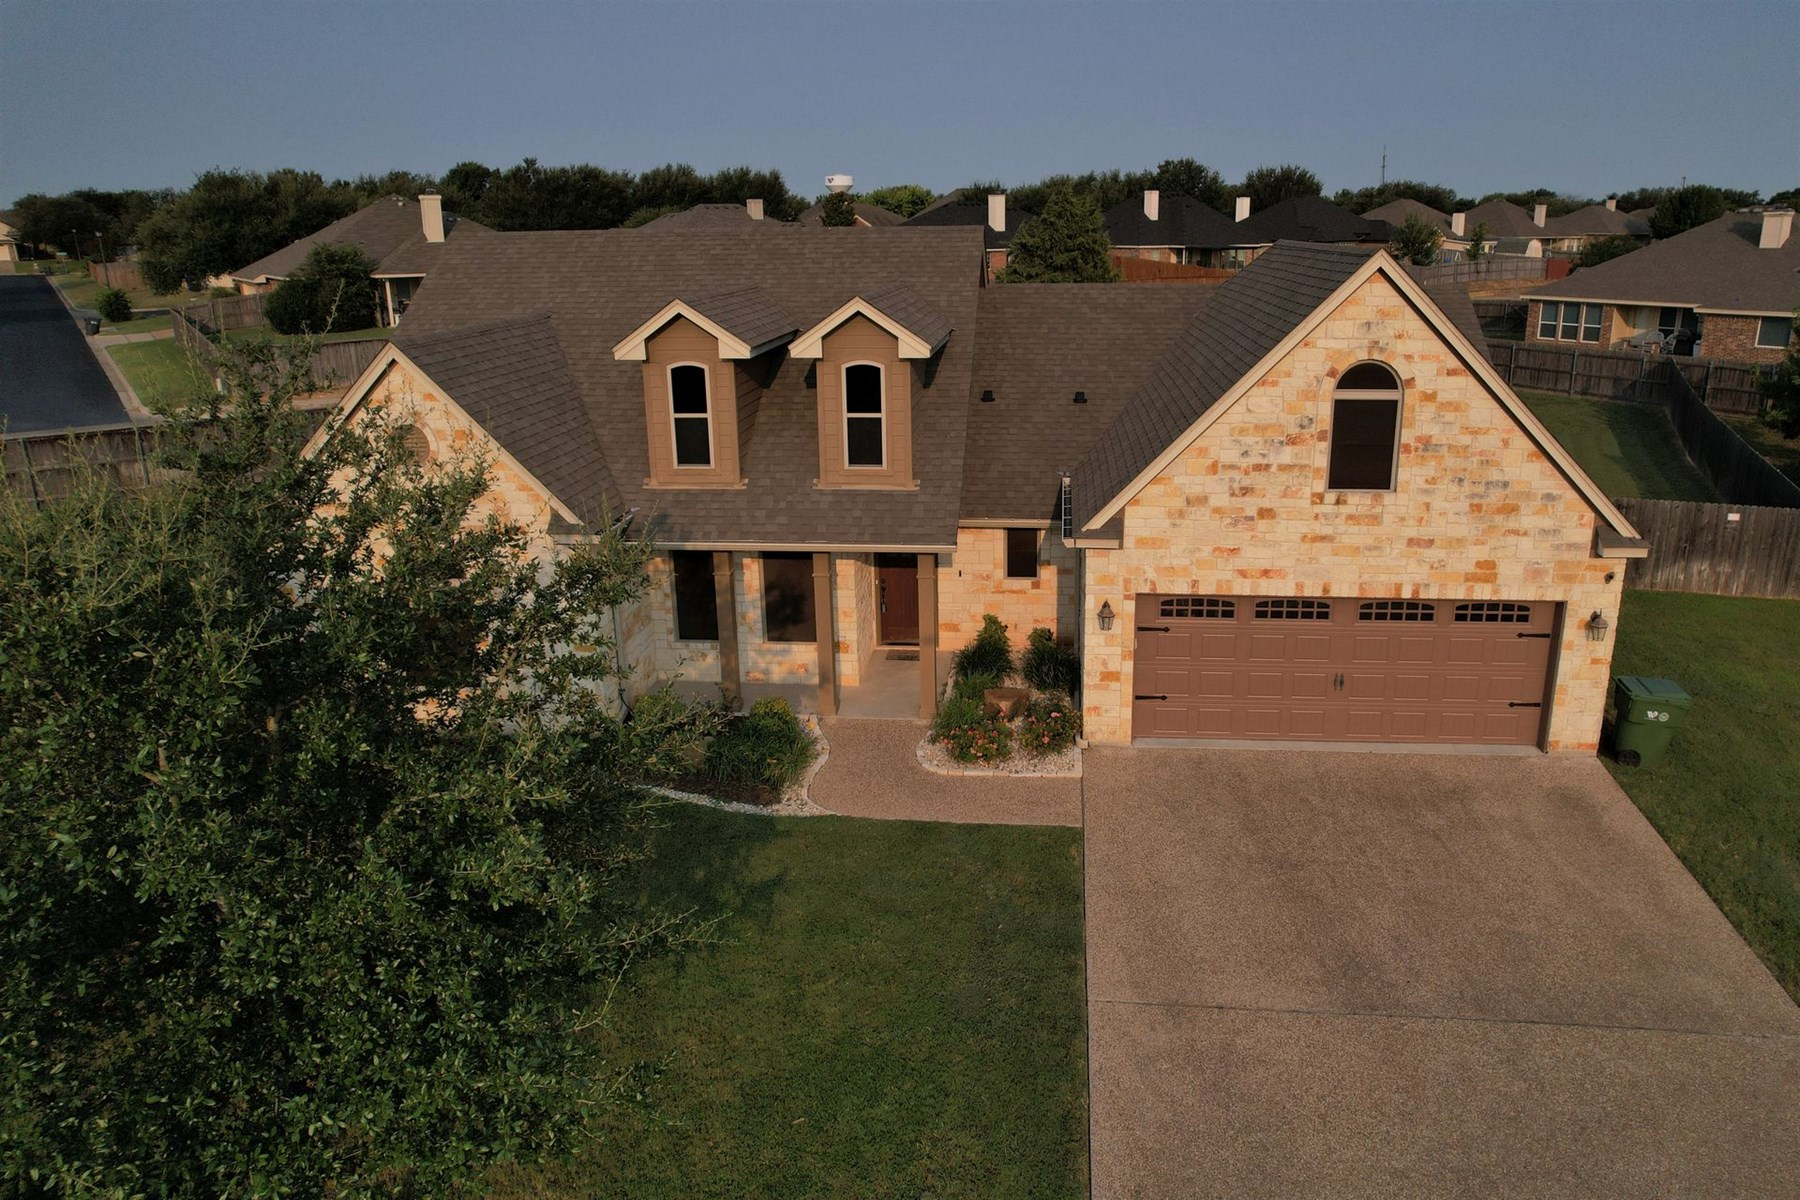 Midway ISD, Woodway, Texas, Central Texas home for Sale